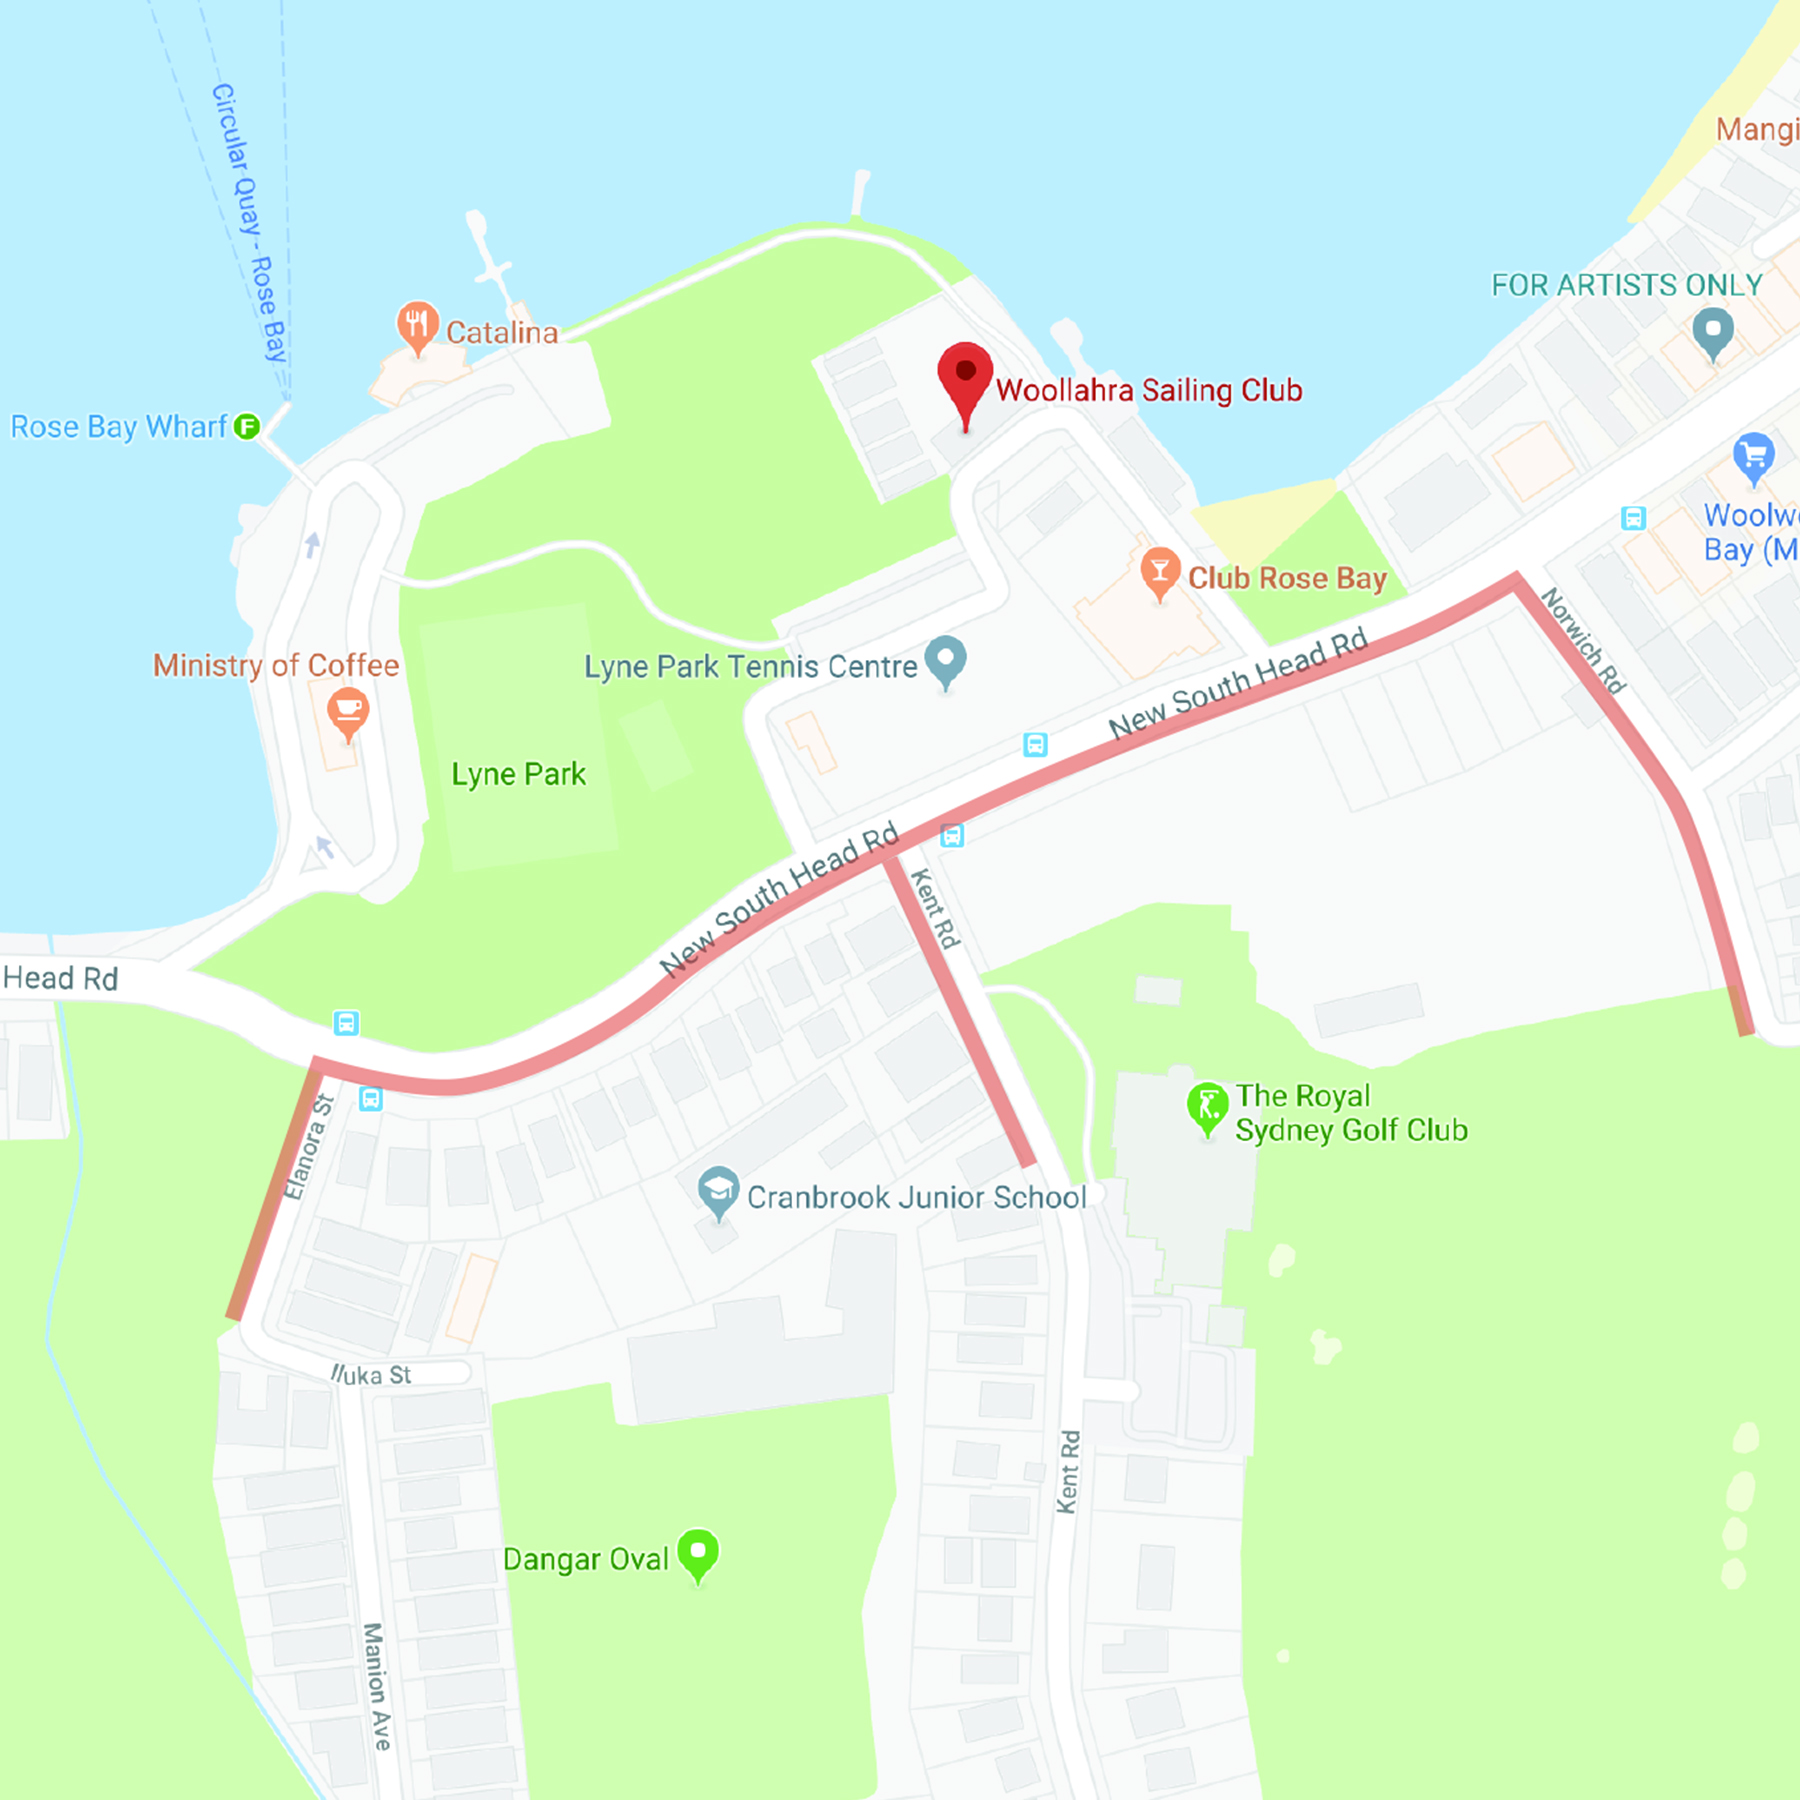 Car parking near the sailing club is available around New South Head Rd. Please allow extra time to find a parking spot as the area can be busy.